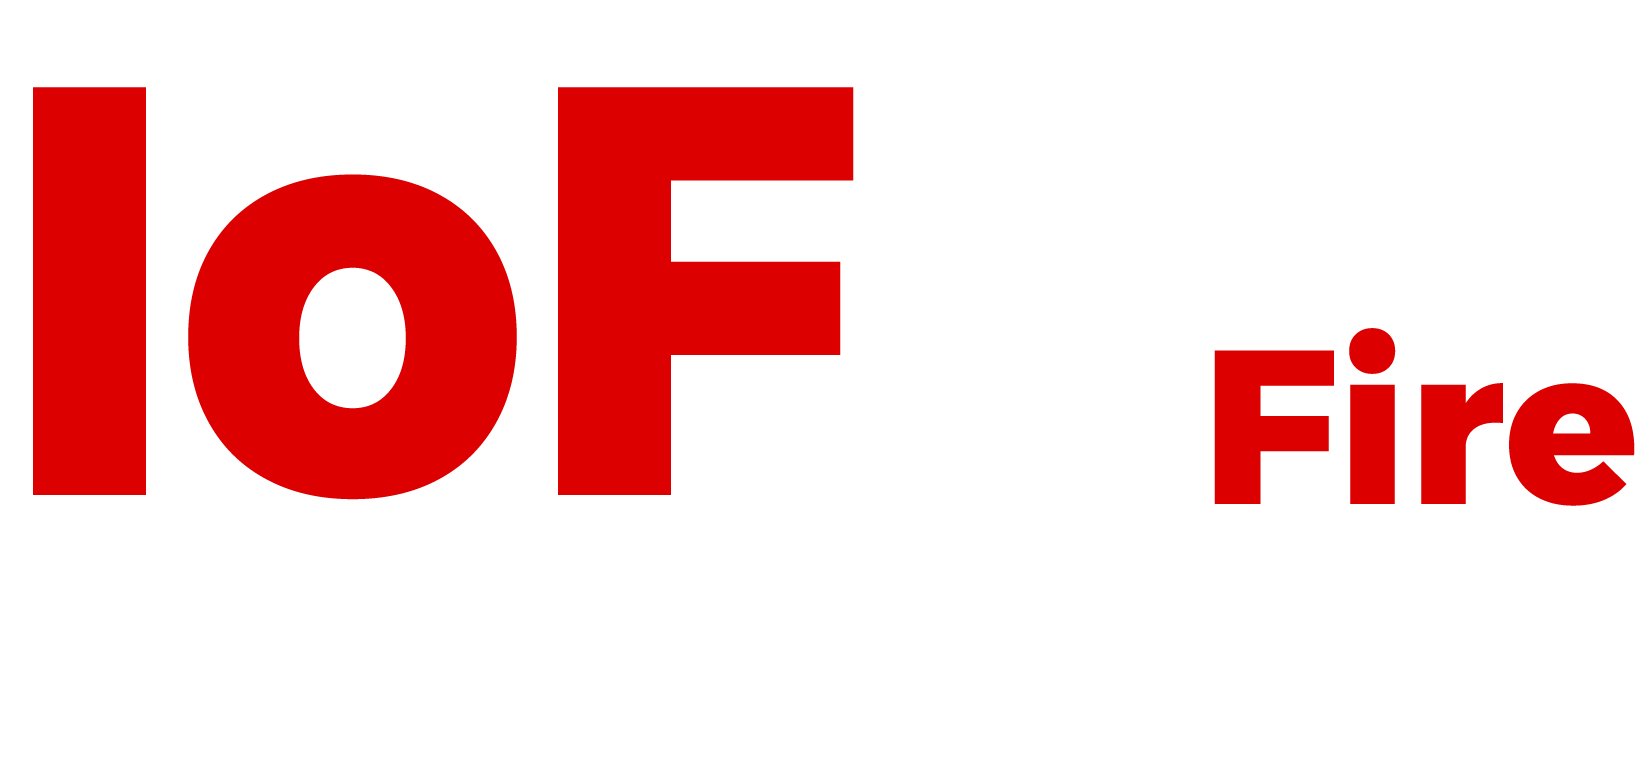 Ideas on Fire logo, name in white and red